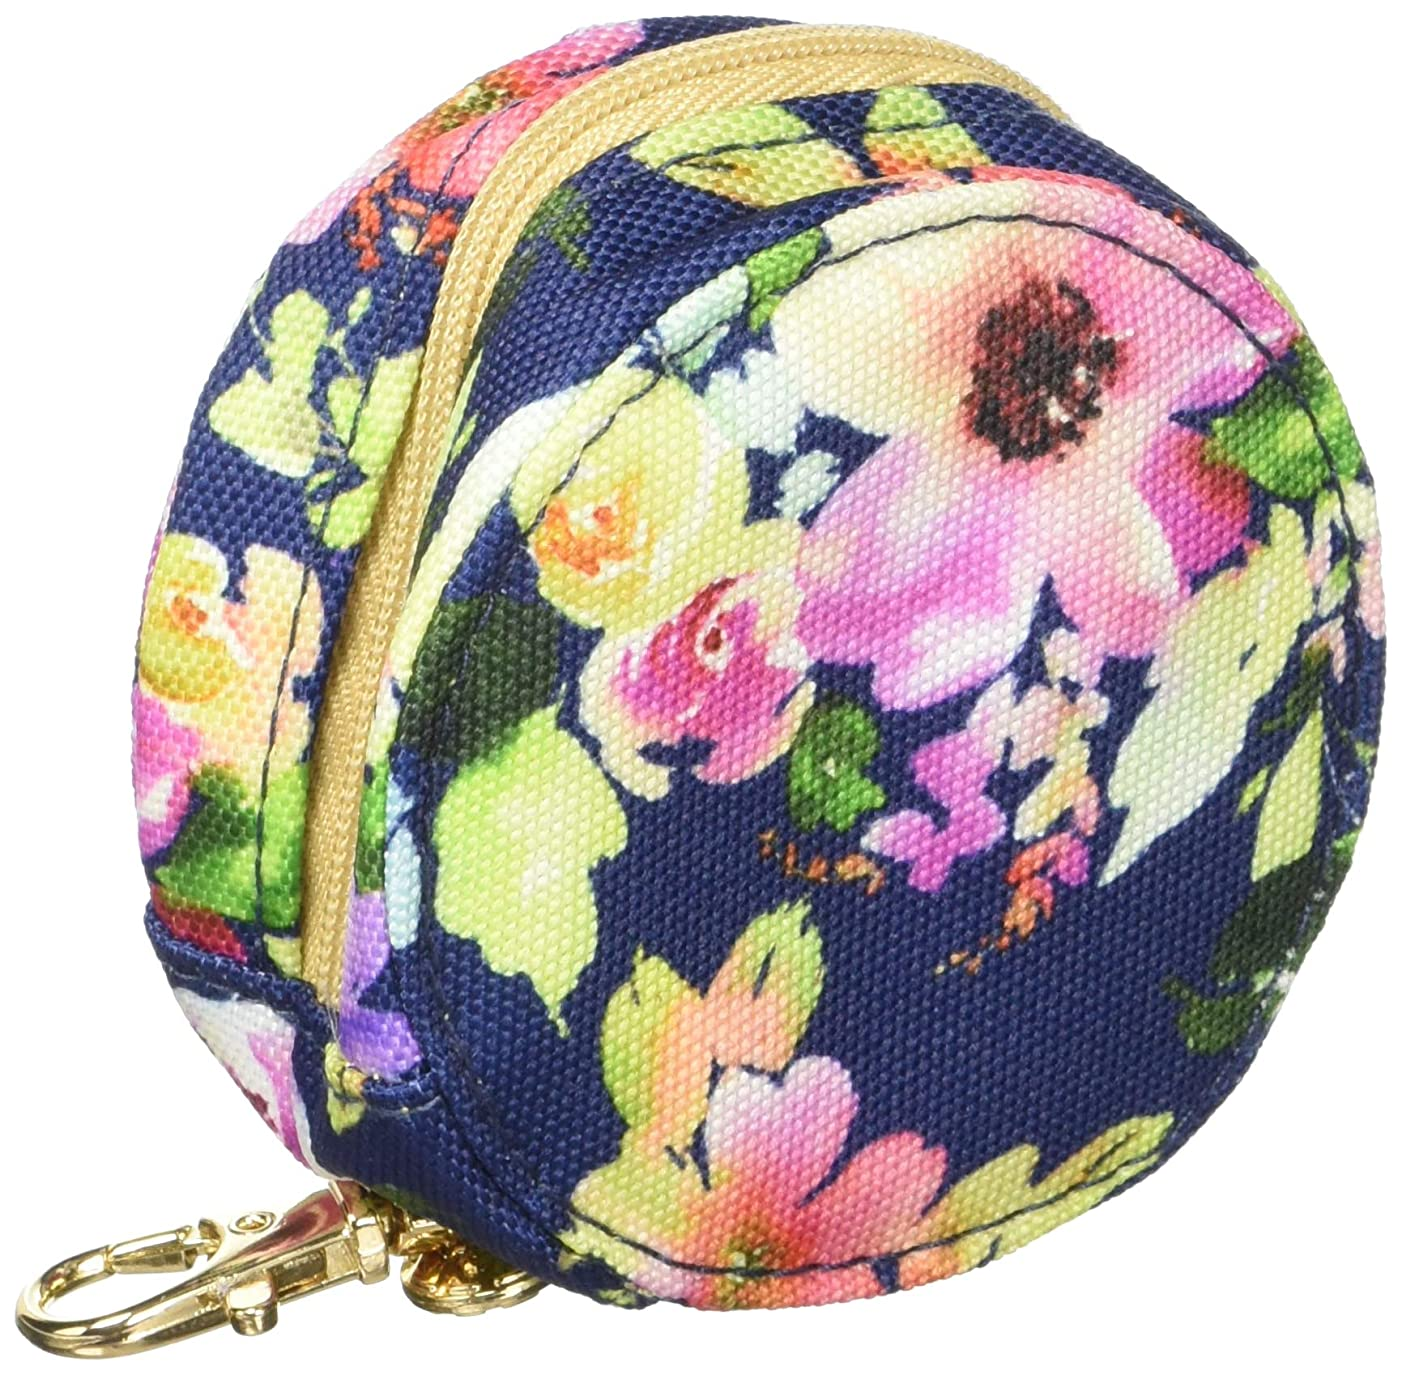 Mary Square 22137 Charleston Earbud Case, 3